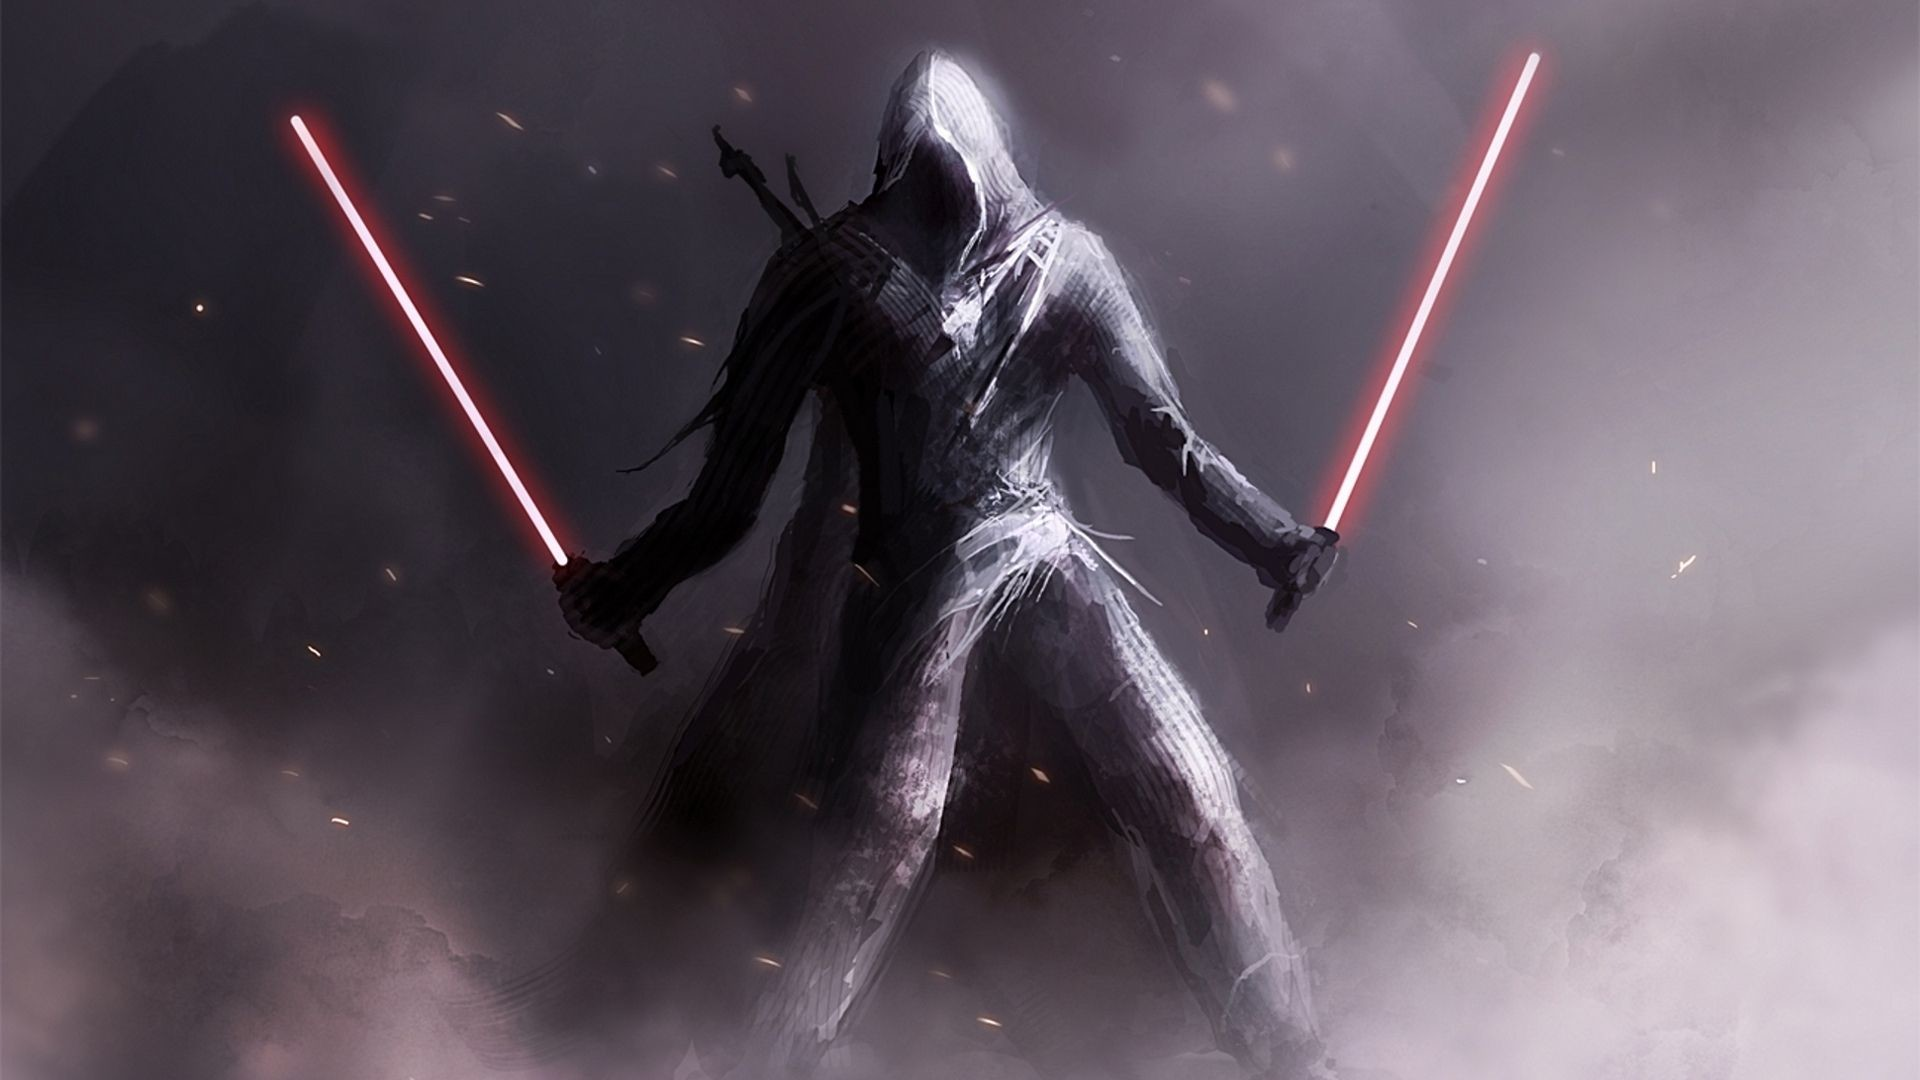 … fiction wallpaper hd star wars sith wallpapers wide at …